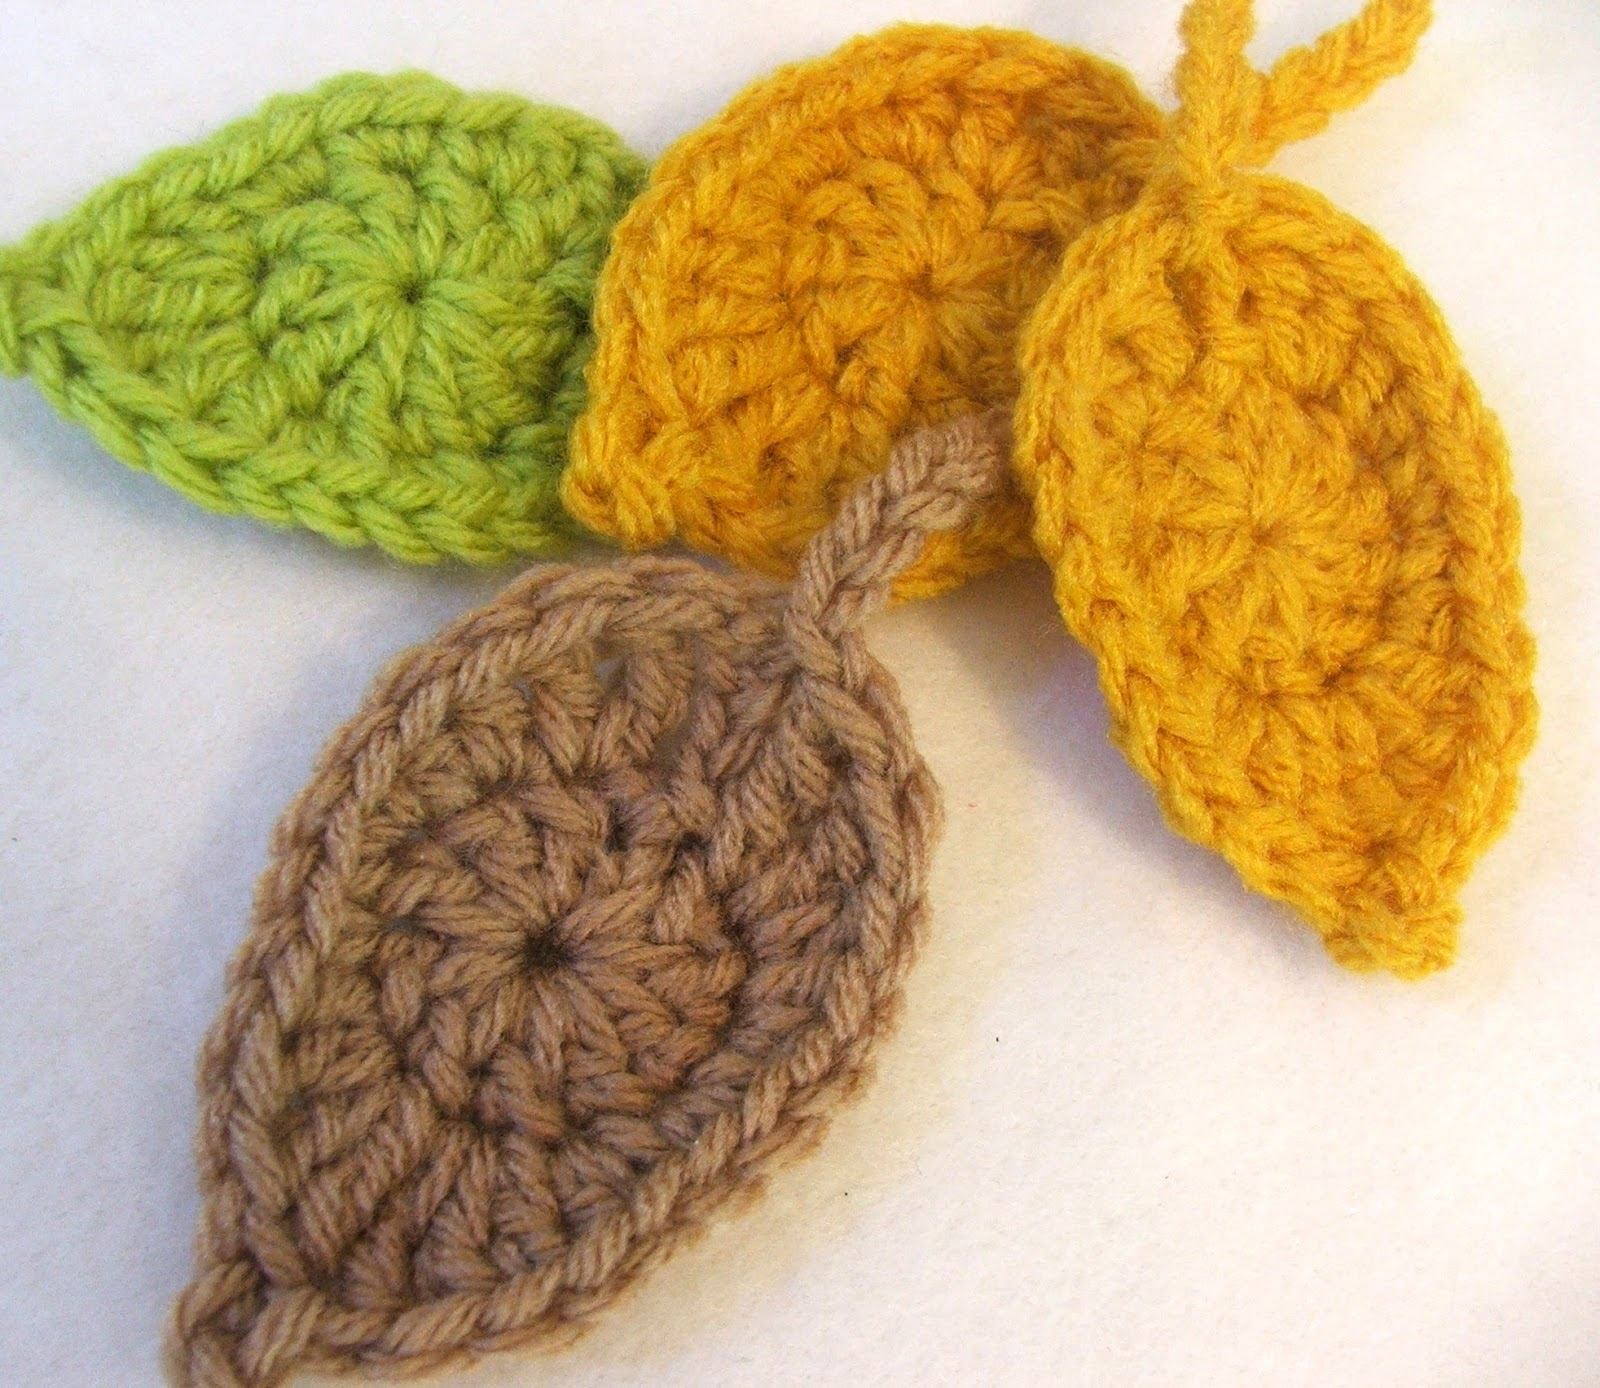 Crocheting Leaves : Susans Hippie Crochet: Free Simple Leaf Crochet Pattern - The Leaves ...